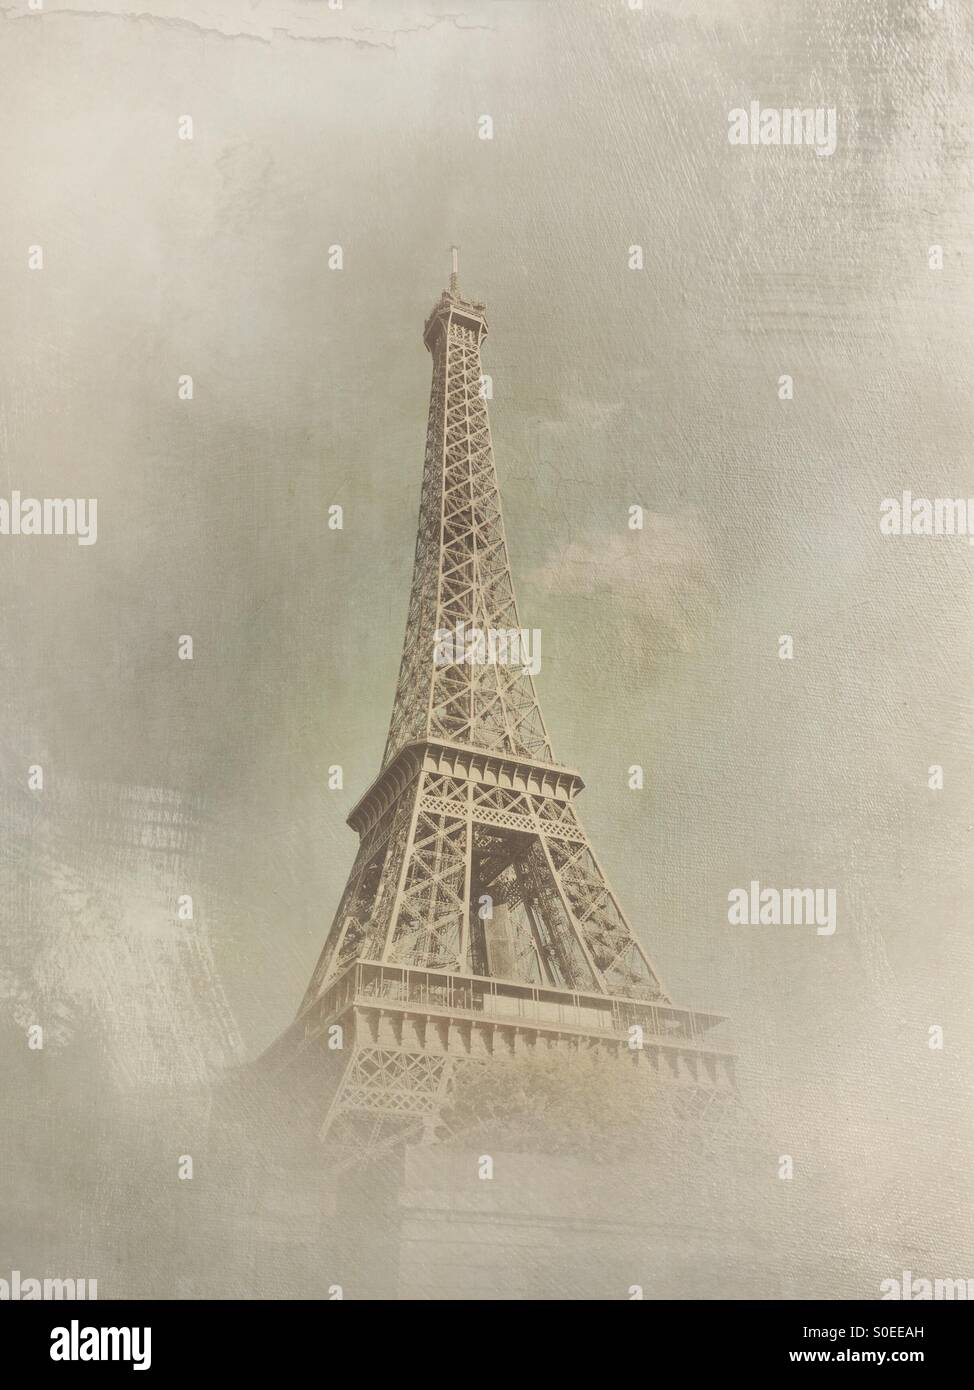 View of Eiffel Tower from cruise boat on Seine River in Paris, France. Vintage texture overlay. - Stock Image